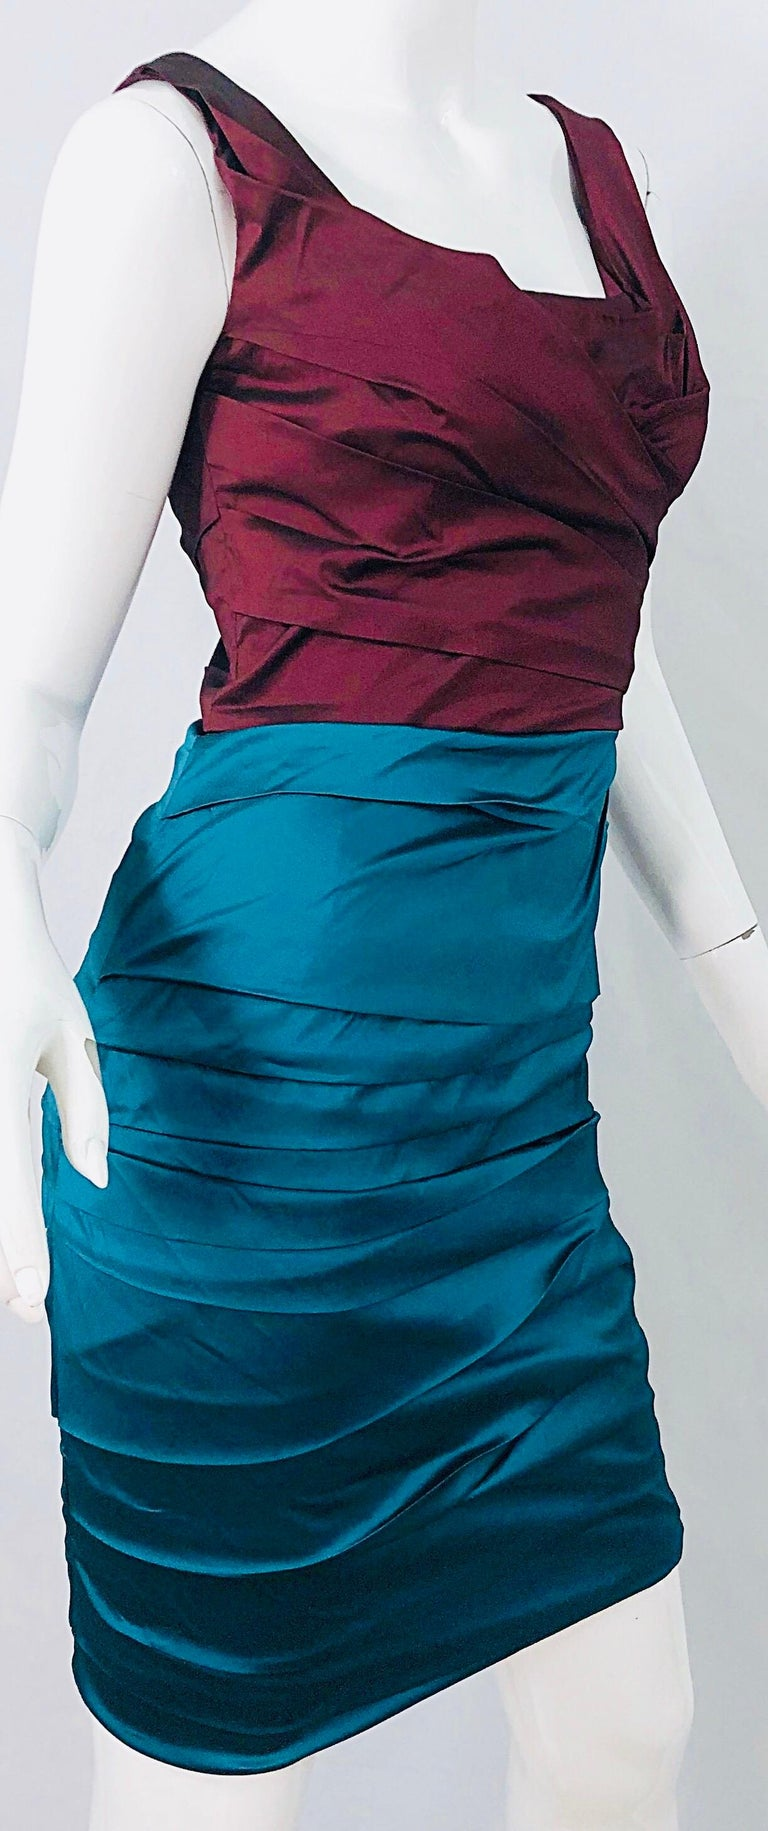 NWT Dolce and Gabbana 1990s Burgundy Turquoise Blue Colorblock Vintage Dress For Sale 3